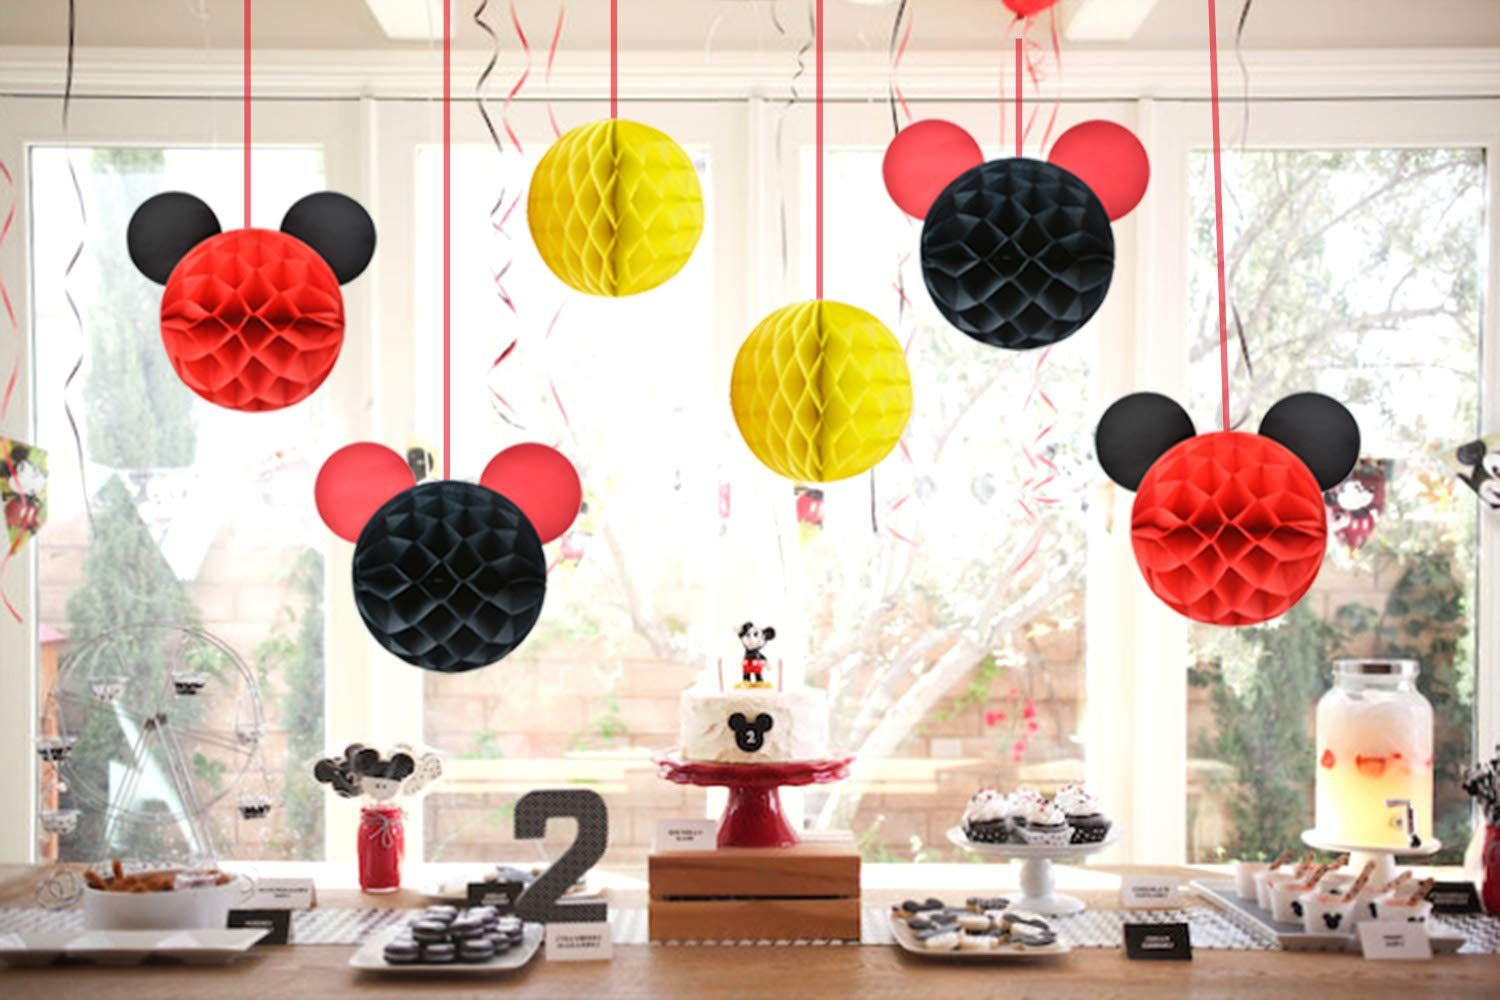 20 Mickey Mouse Birthday Party Ideas How To Throw A Mickey Mouse Themed 1st Birthday